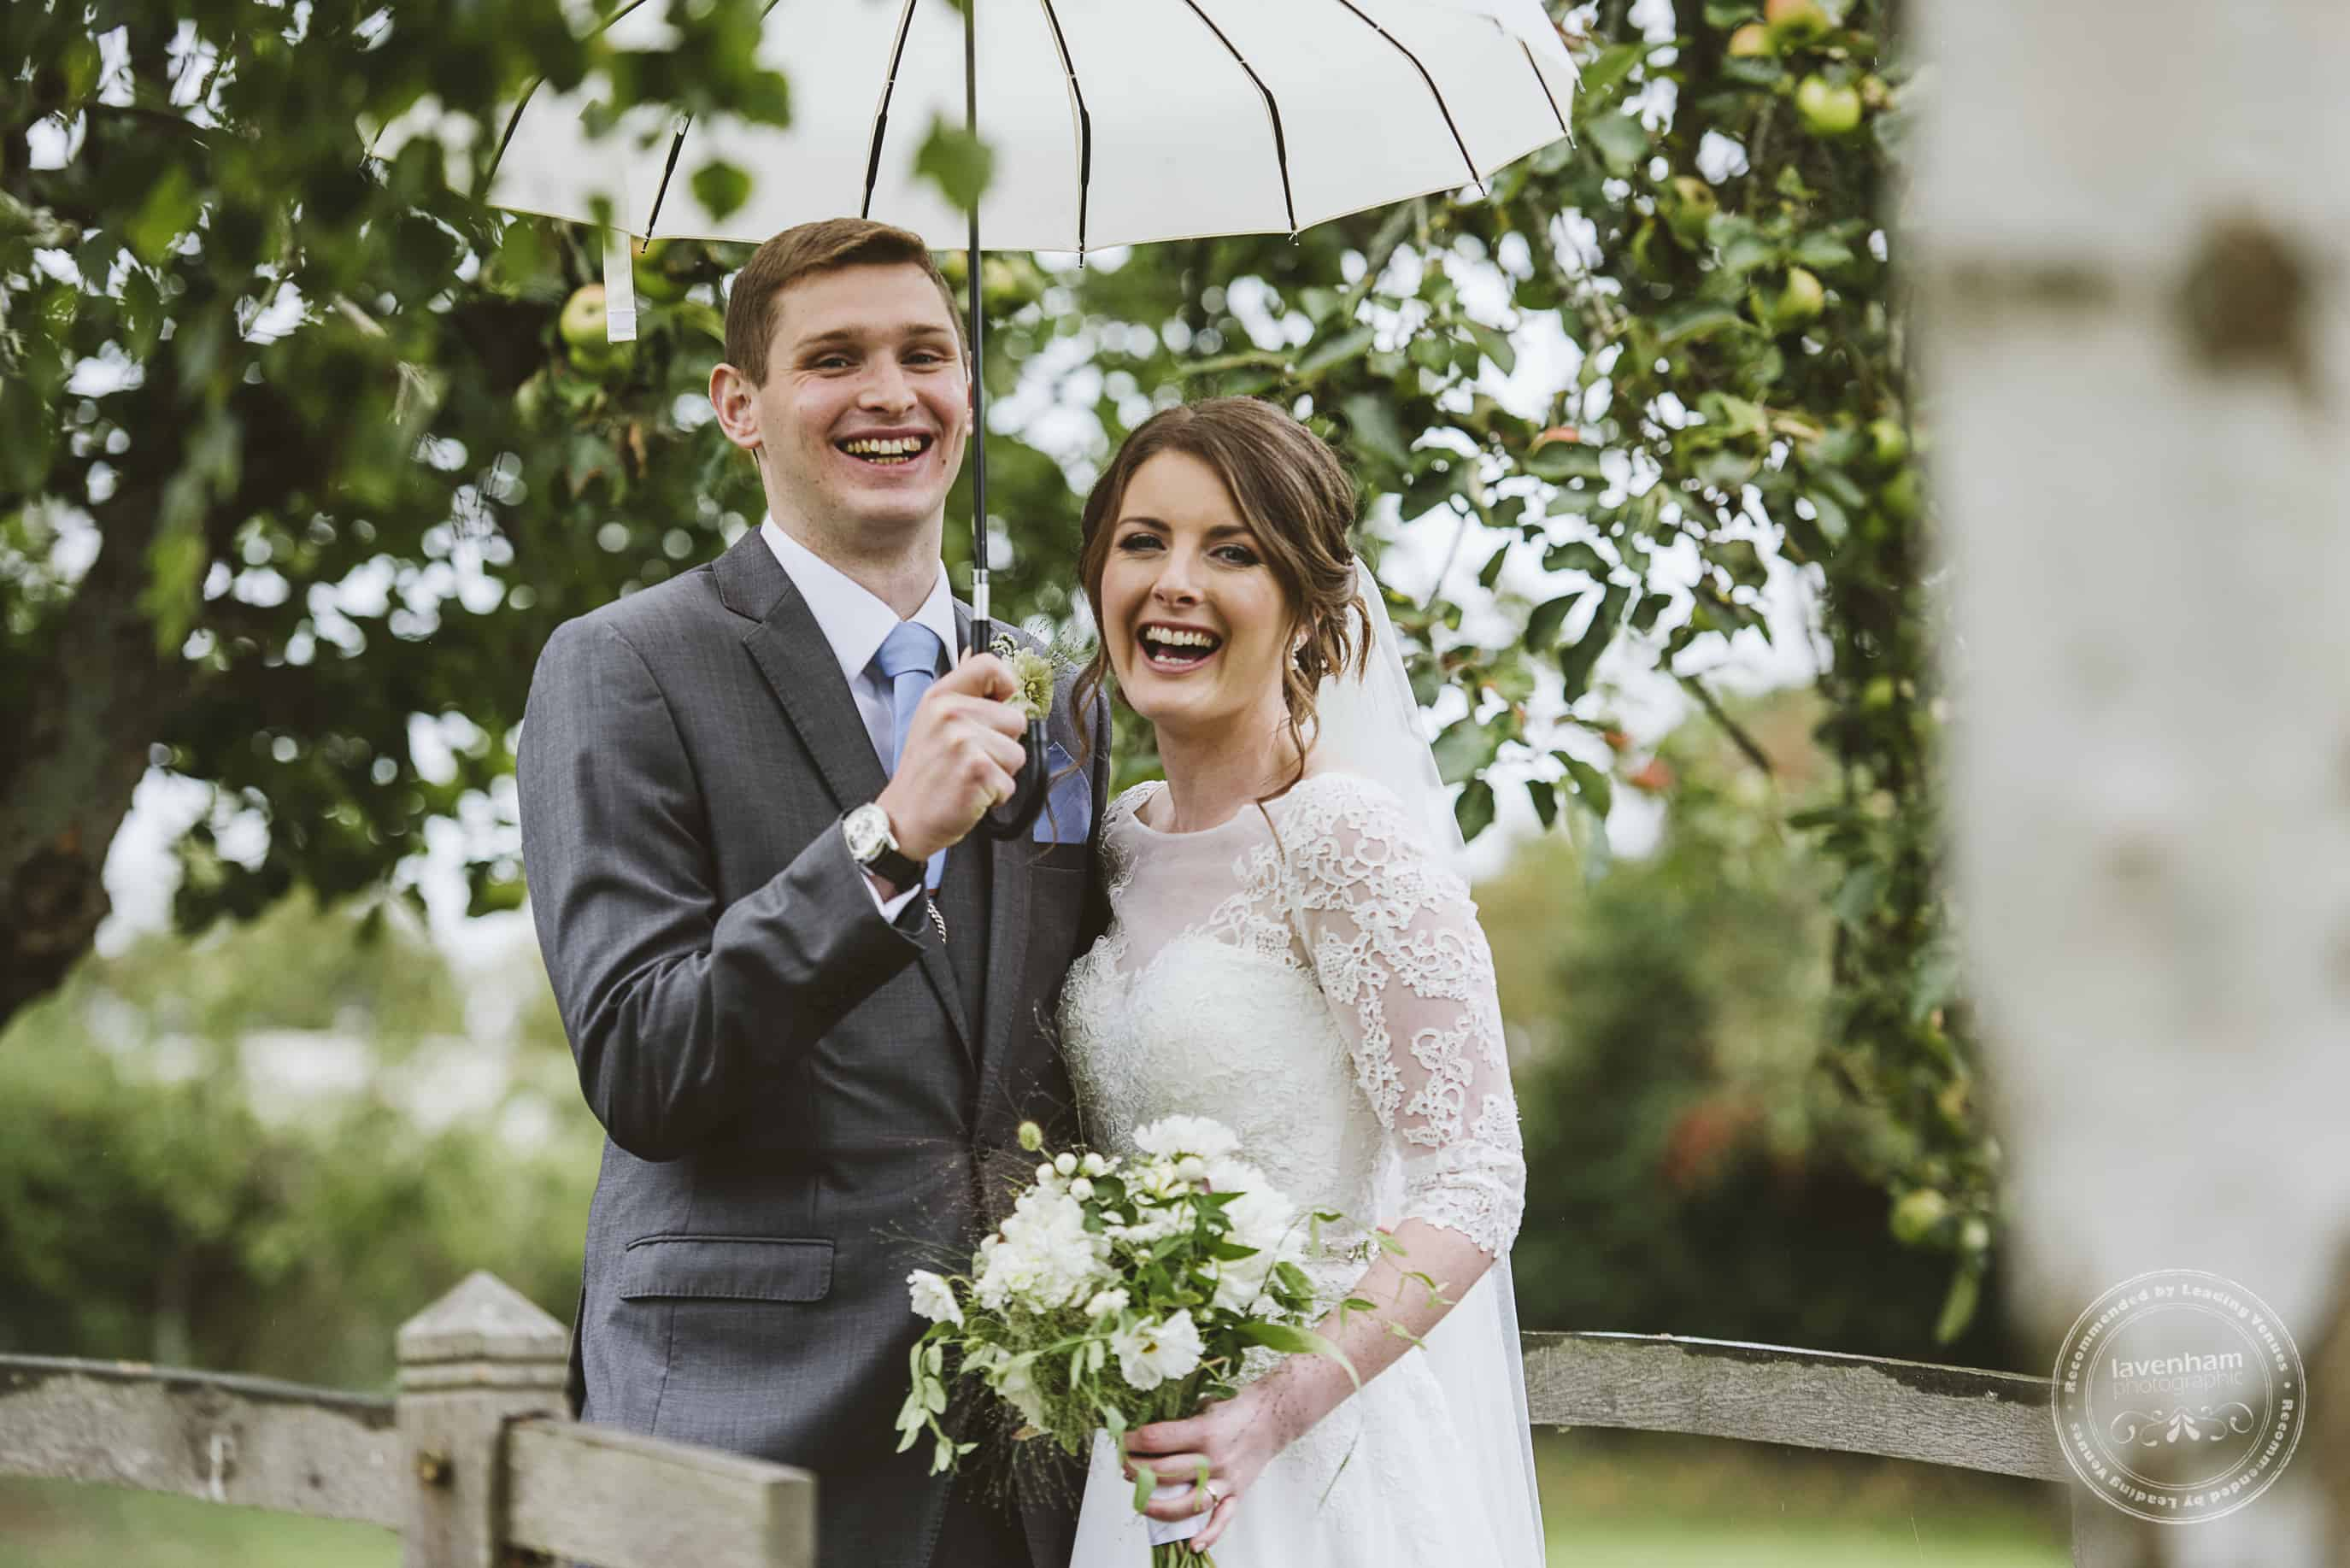 220918 Alpheton Barn Wedding Photography by Lavenham Photographic 092